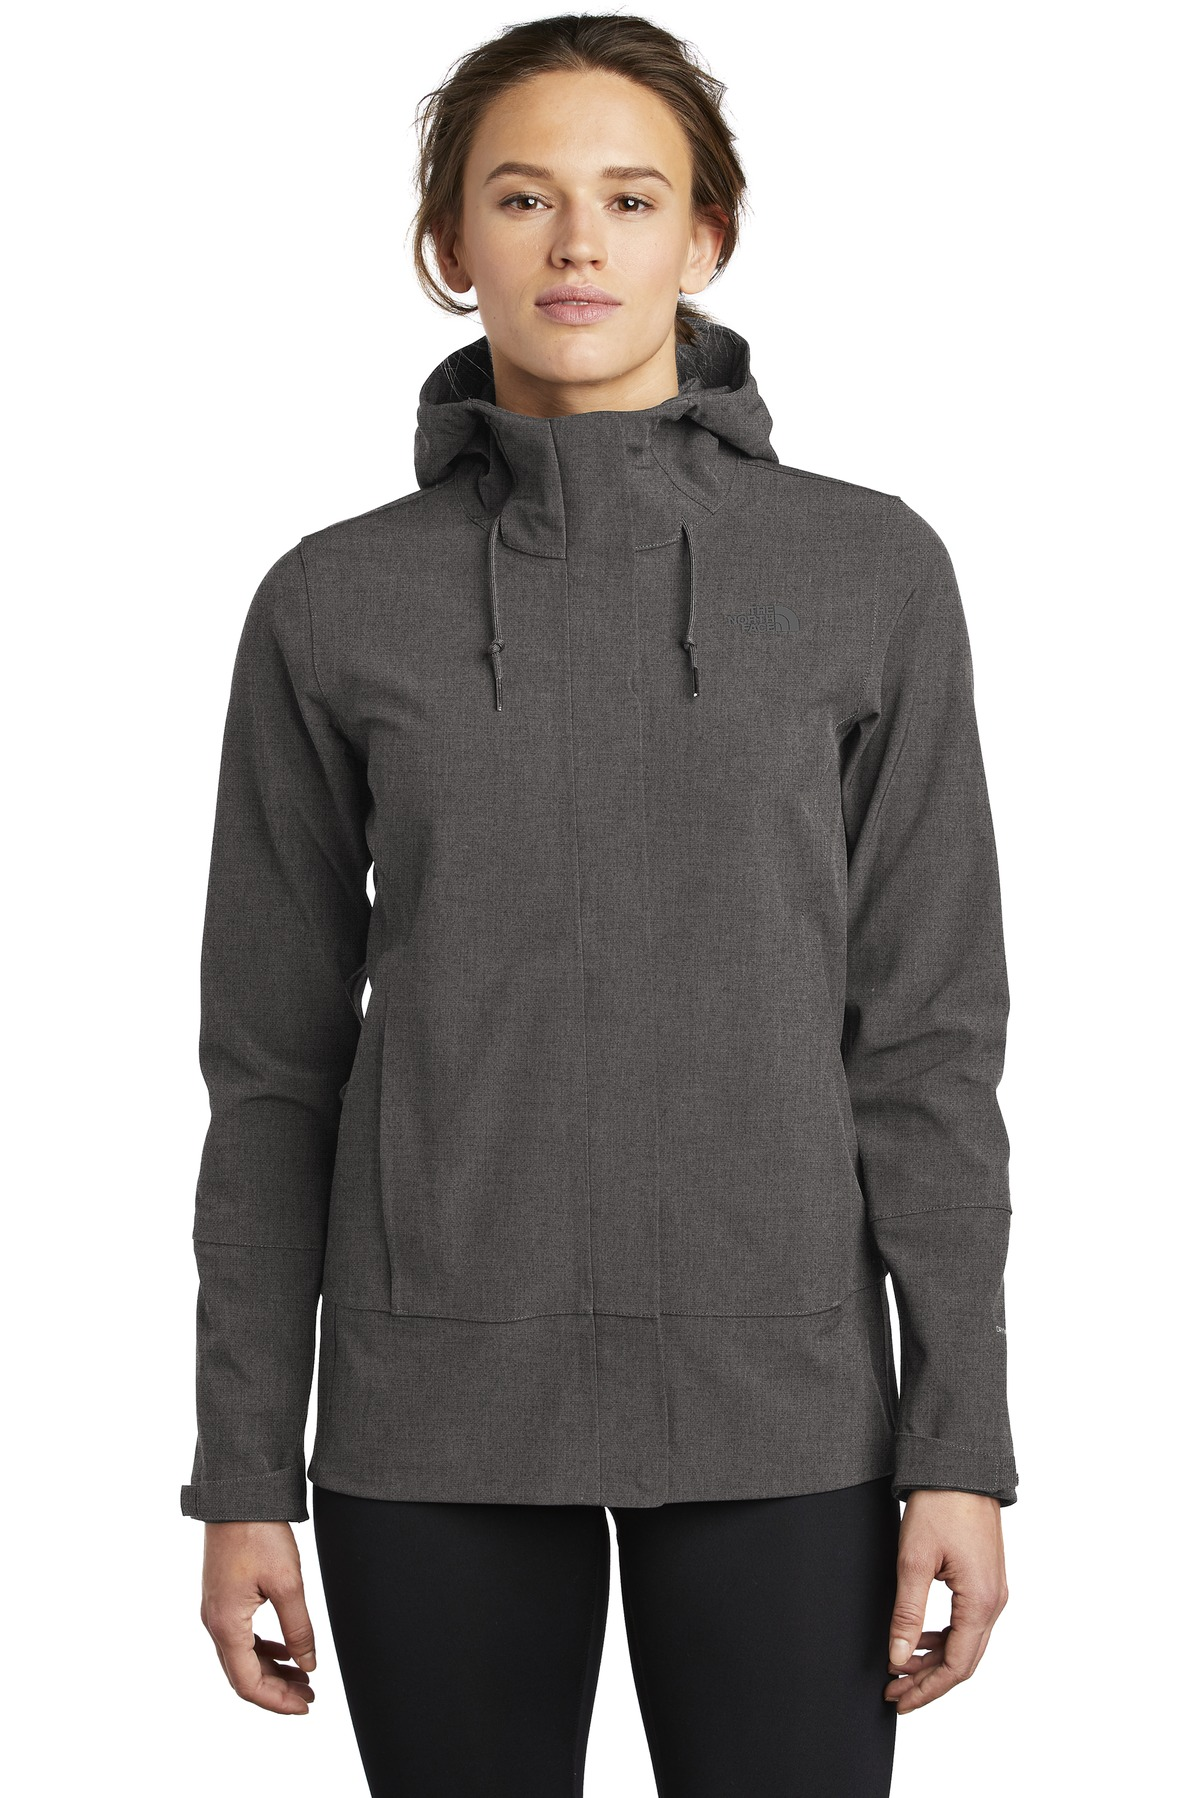 The North Face  ®  Ladies Apex DryVent  ™  Jacket NF0A47FJ - TNF Dark Grey Heather